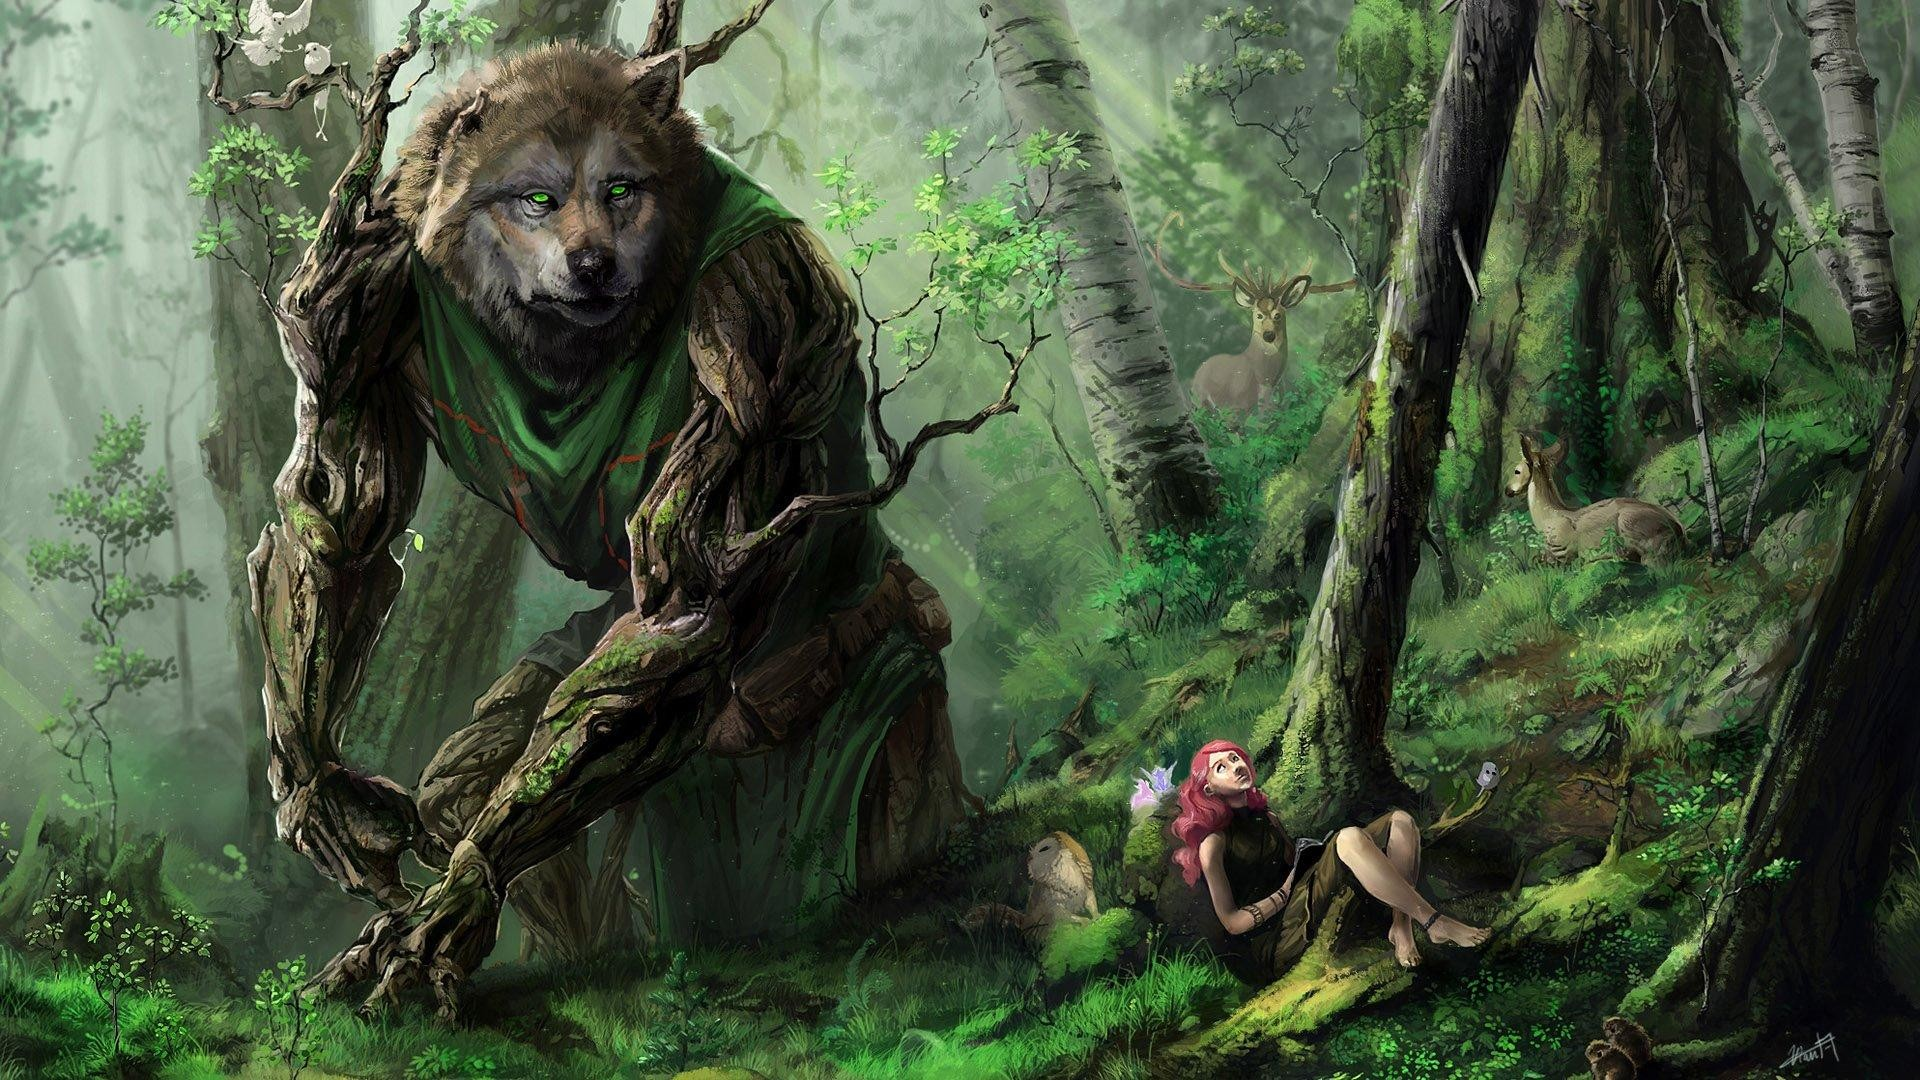 Res: 1920x1080, Fantasy Forest With Fabulous Creatures Wallpaper   Wallpaper Studio 10    Tens of thousands HD and UltraHD wallpapers for Android, Windows and Xbox